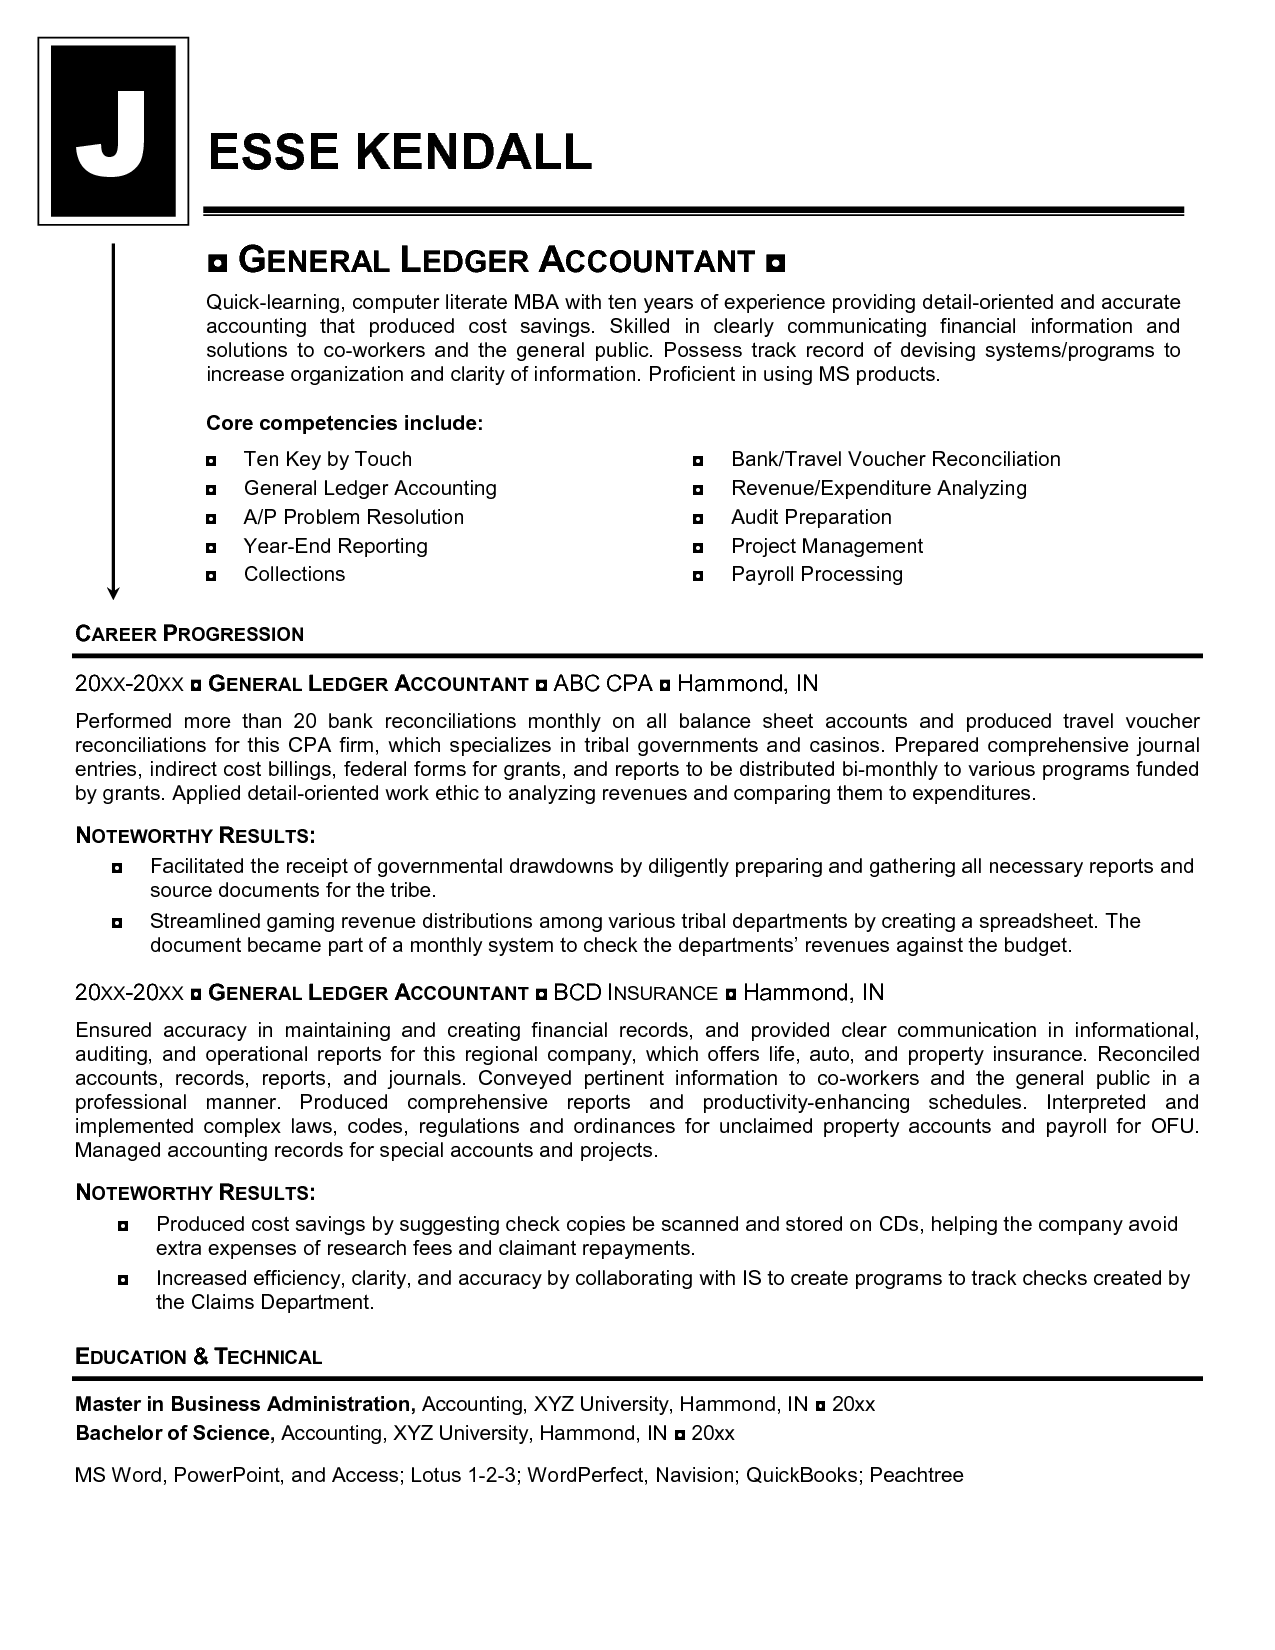 Professional Accounting Resume Templates General Ledger Accountant Resume Mike 39s Blog